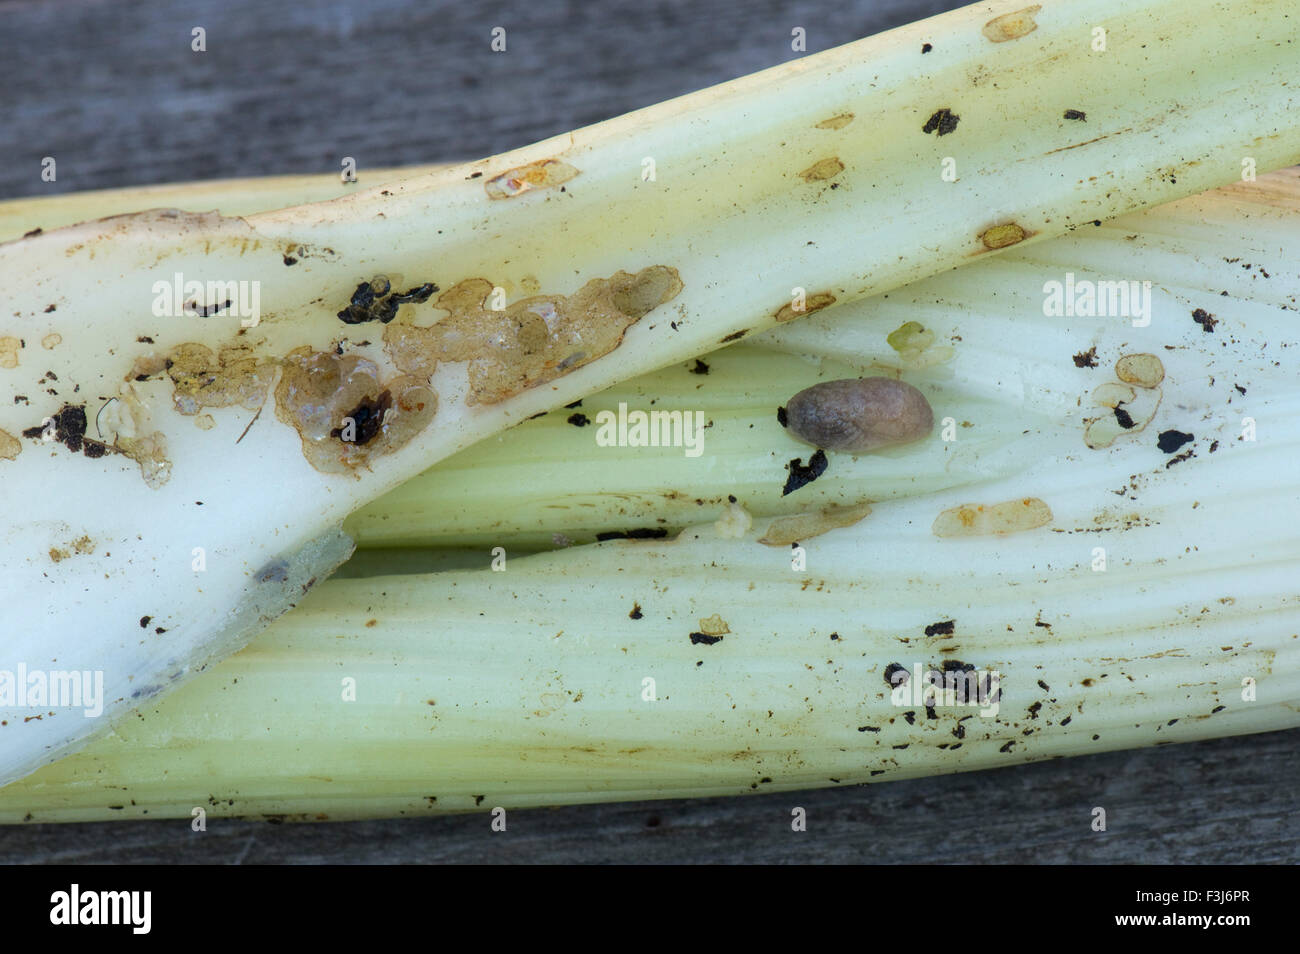 Slug grazing damage to blanched celery sticks, which occurs inside the cover around the stems, Berkshire, September - Stock Image